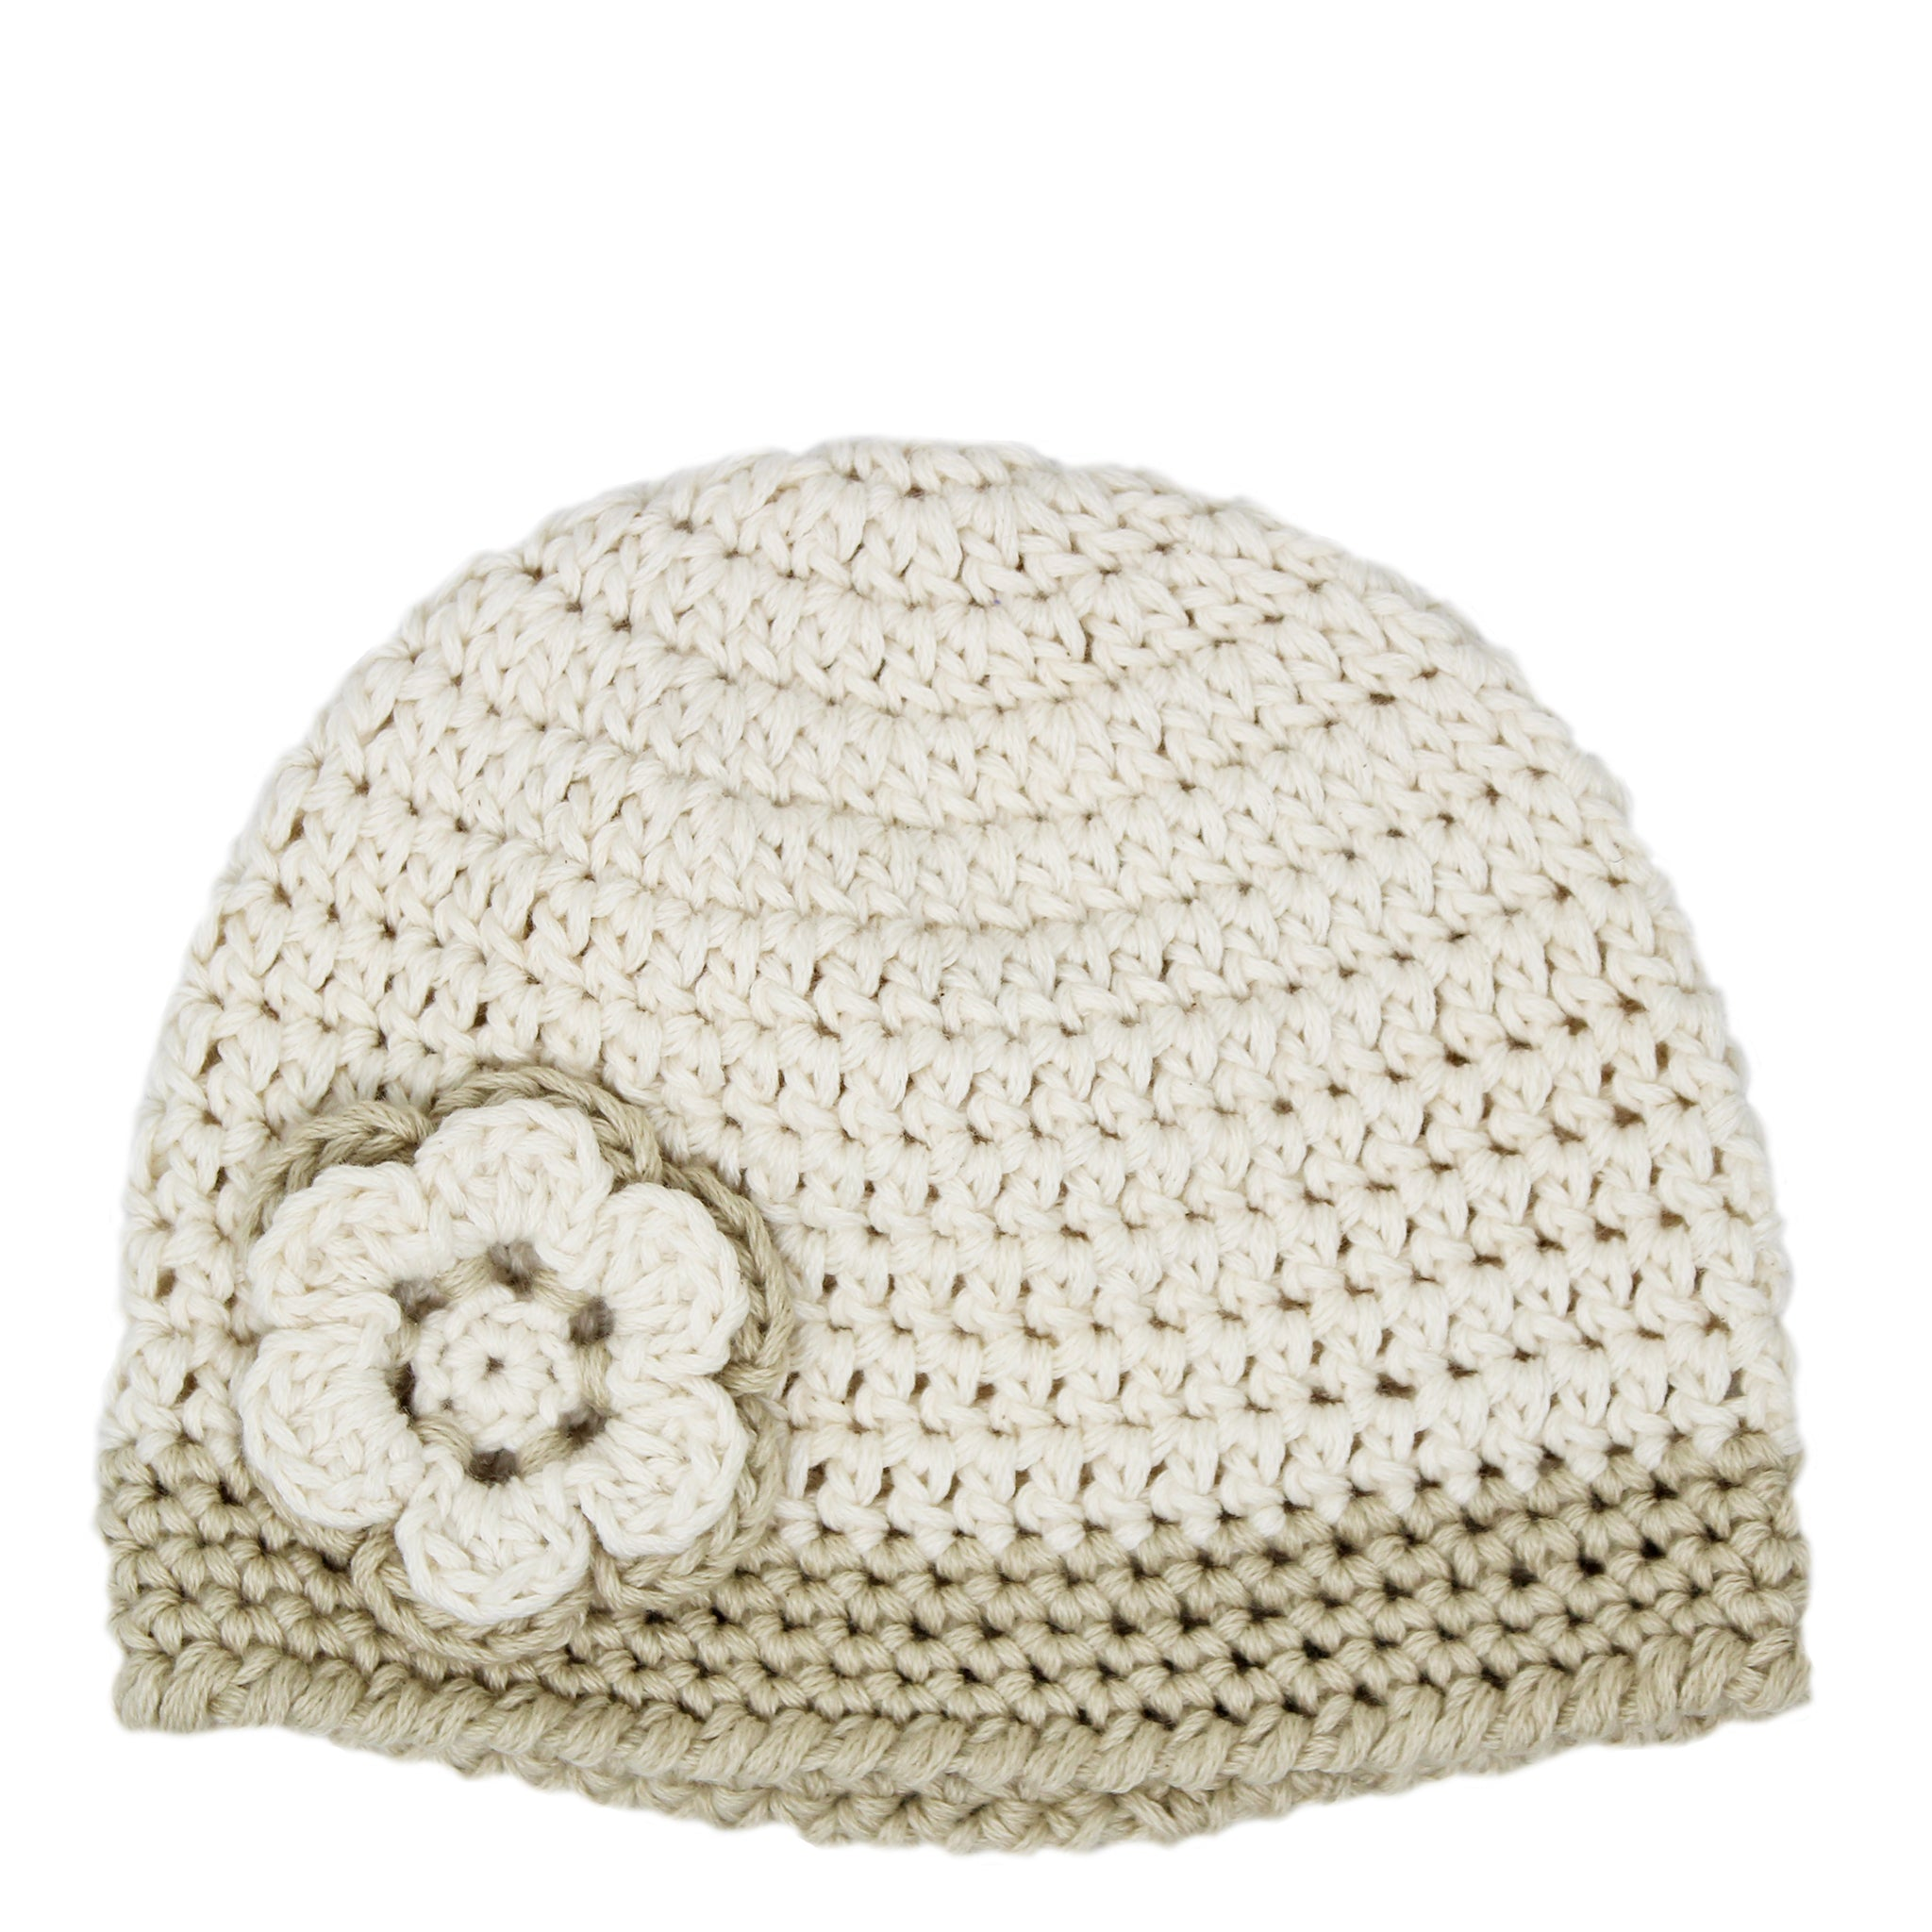 crocheted baby beanie - beige flower decoration